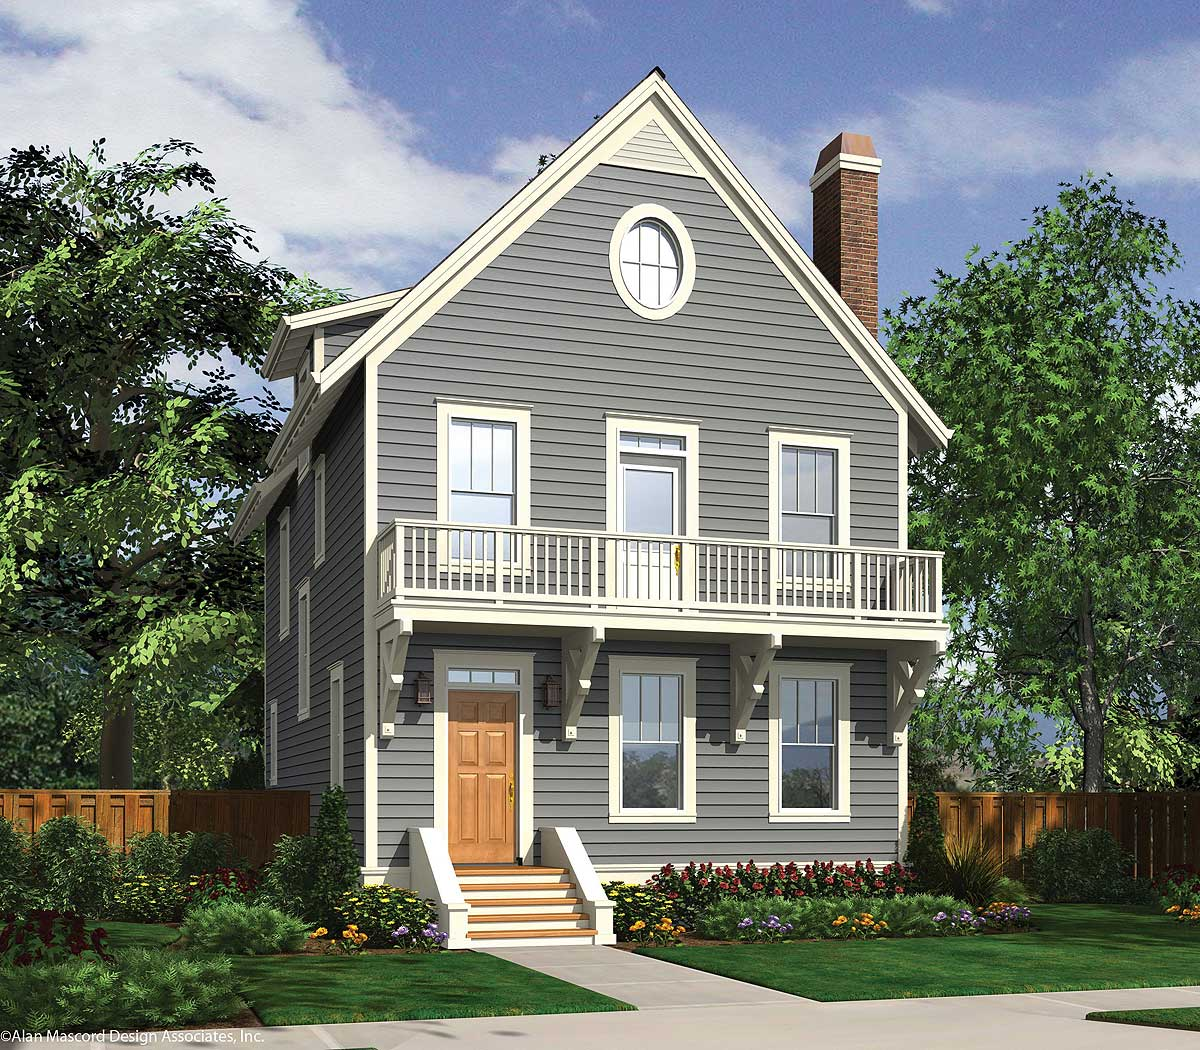 3-Story House Plans